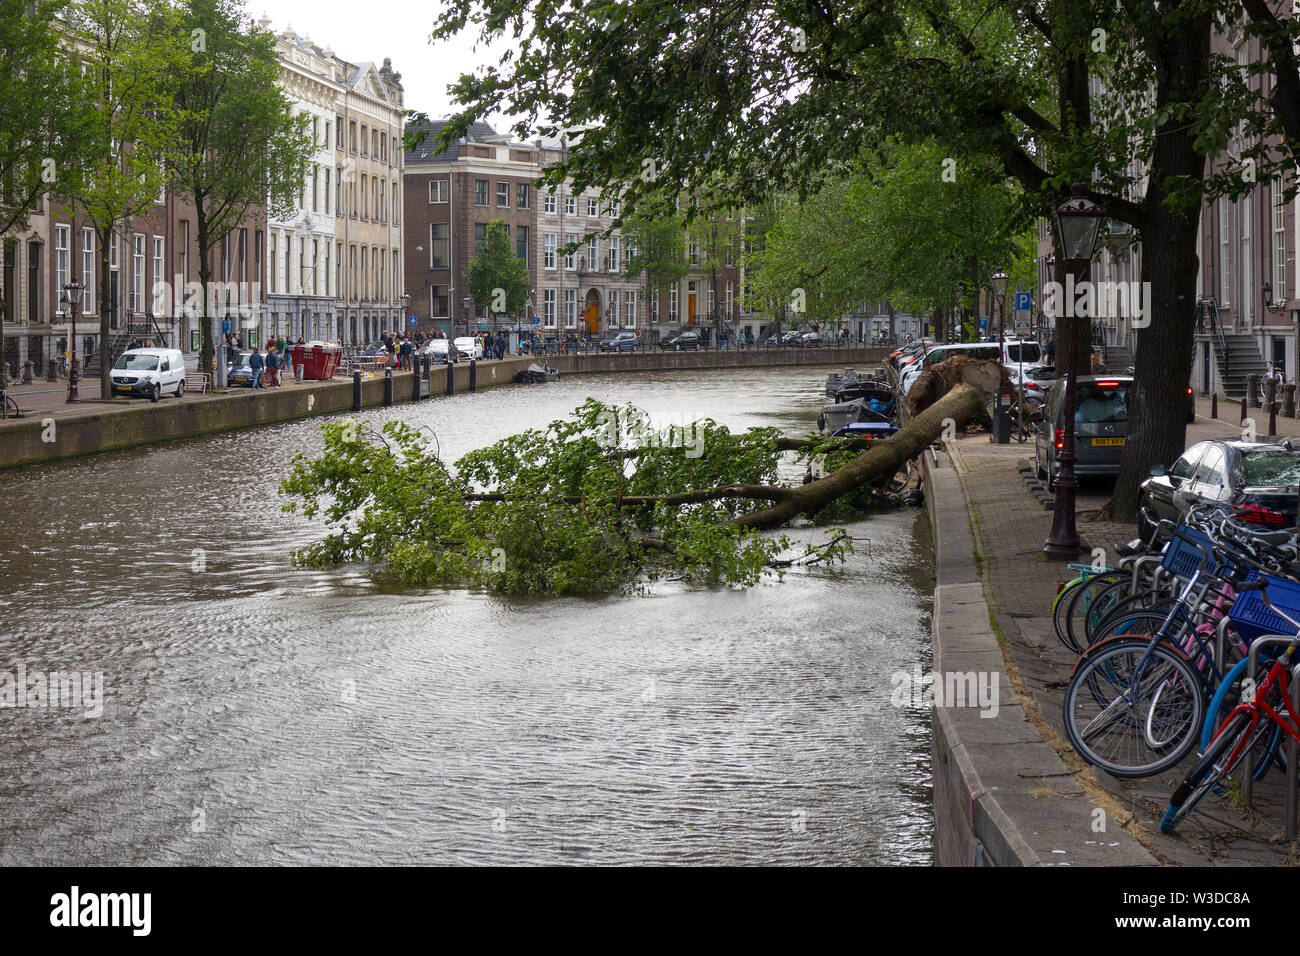 Amsterdam, Holland - June 09, 2019: Blown down tree in the canal after a heavy storm Stock Photo